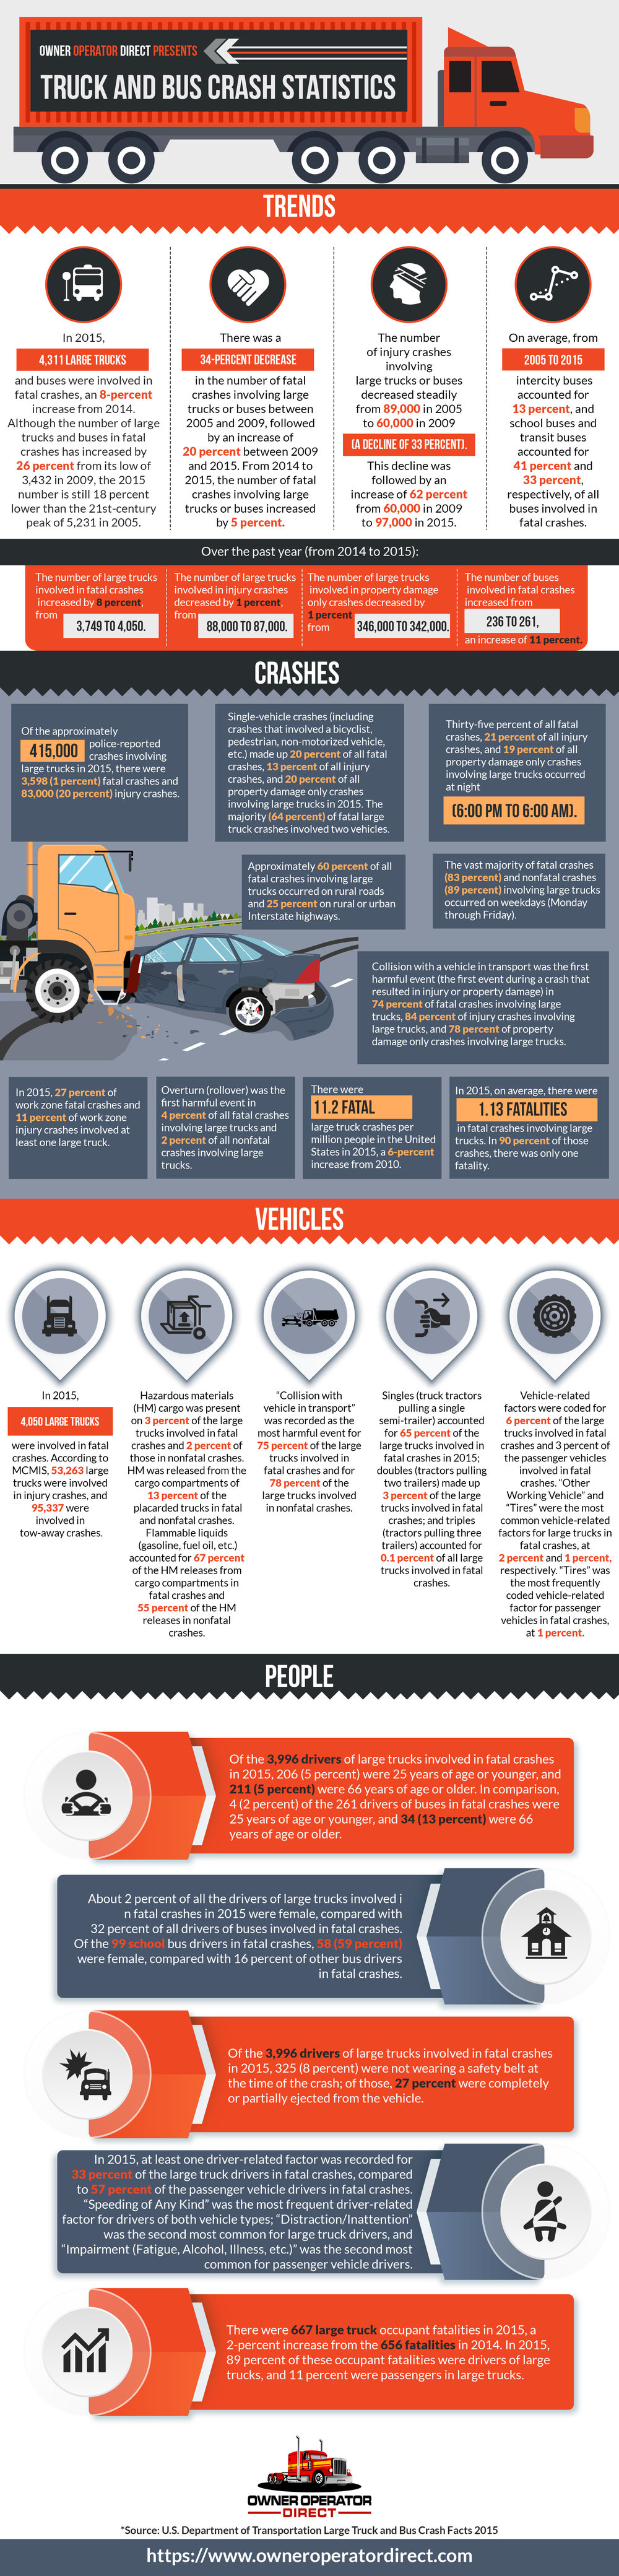 Truck crashes will impact your commercial truck insurance rates. Infographic by Owner Operator Direct.